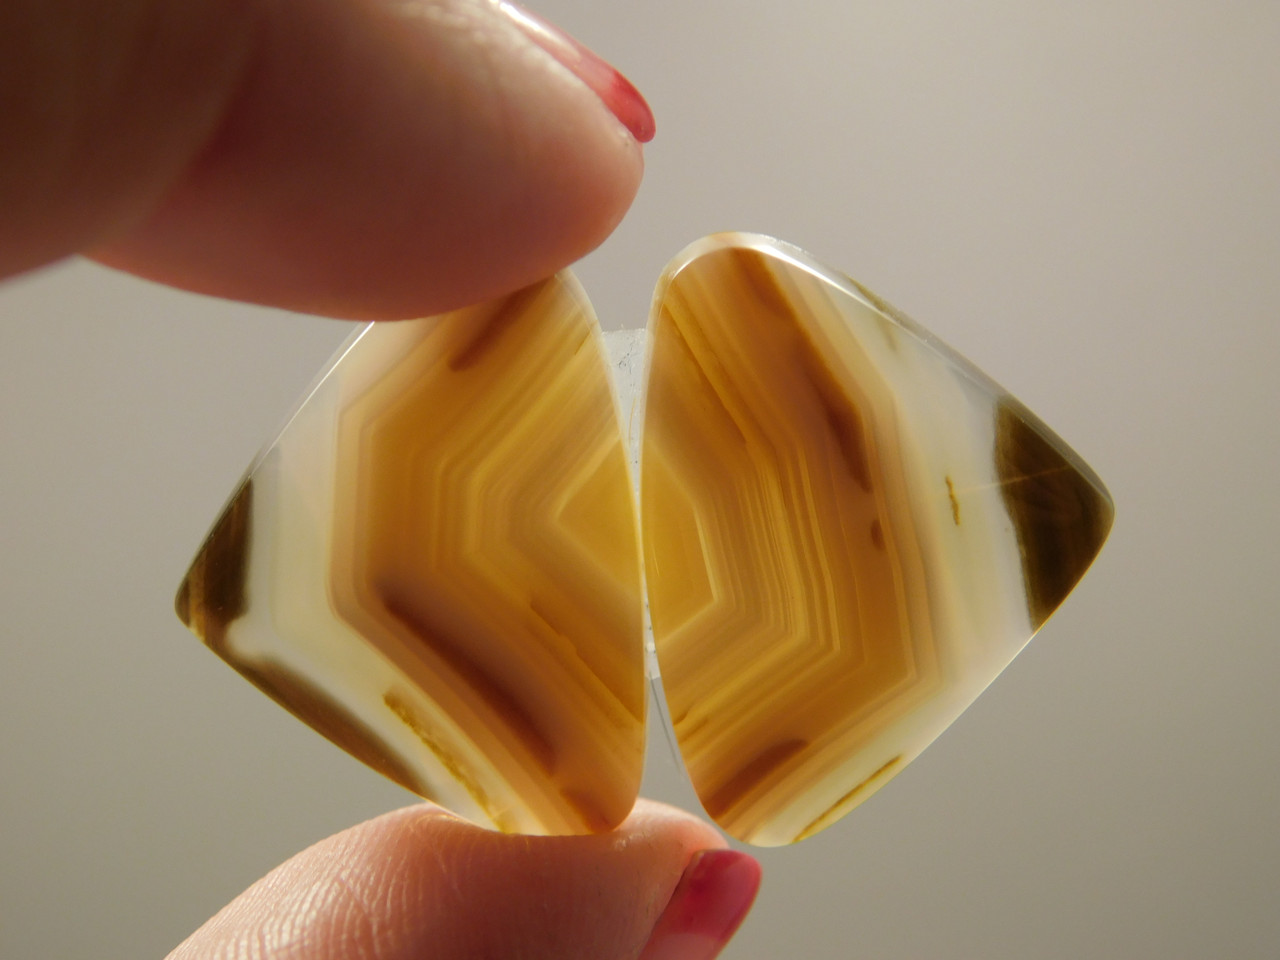 Brazilian Piranha Agate Matched Pair Cabochons Stones #2